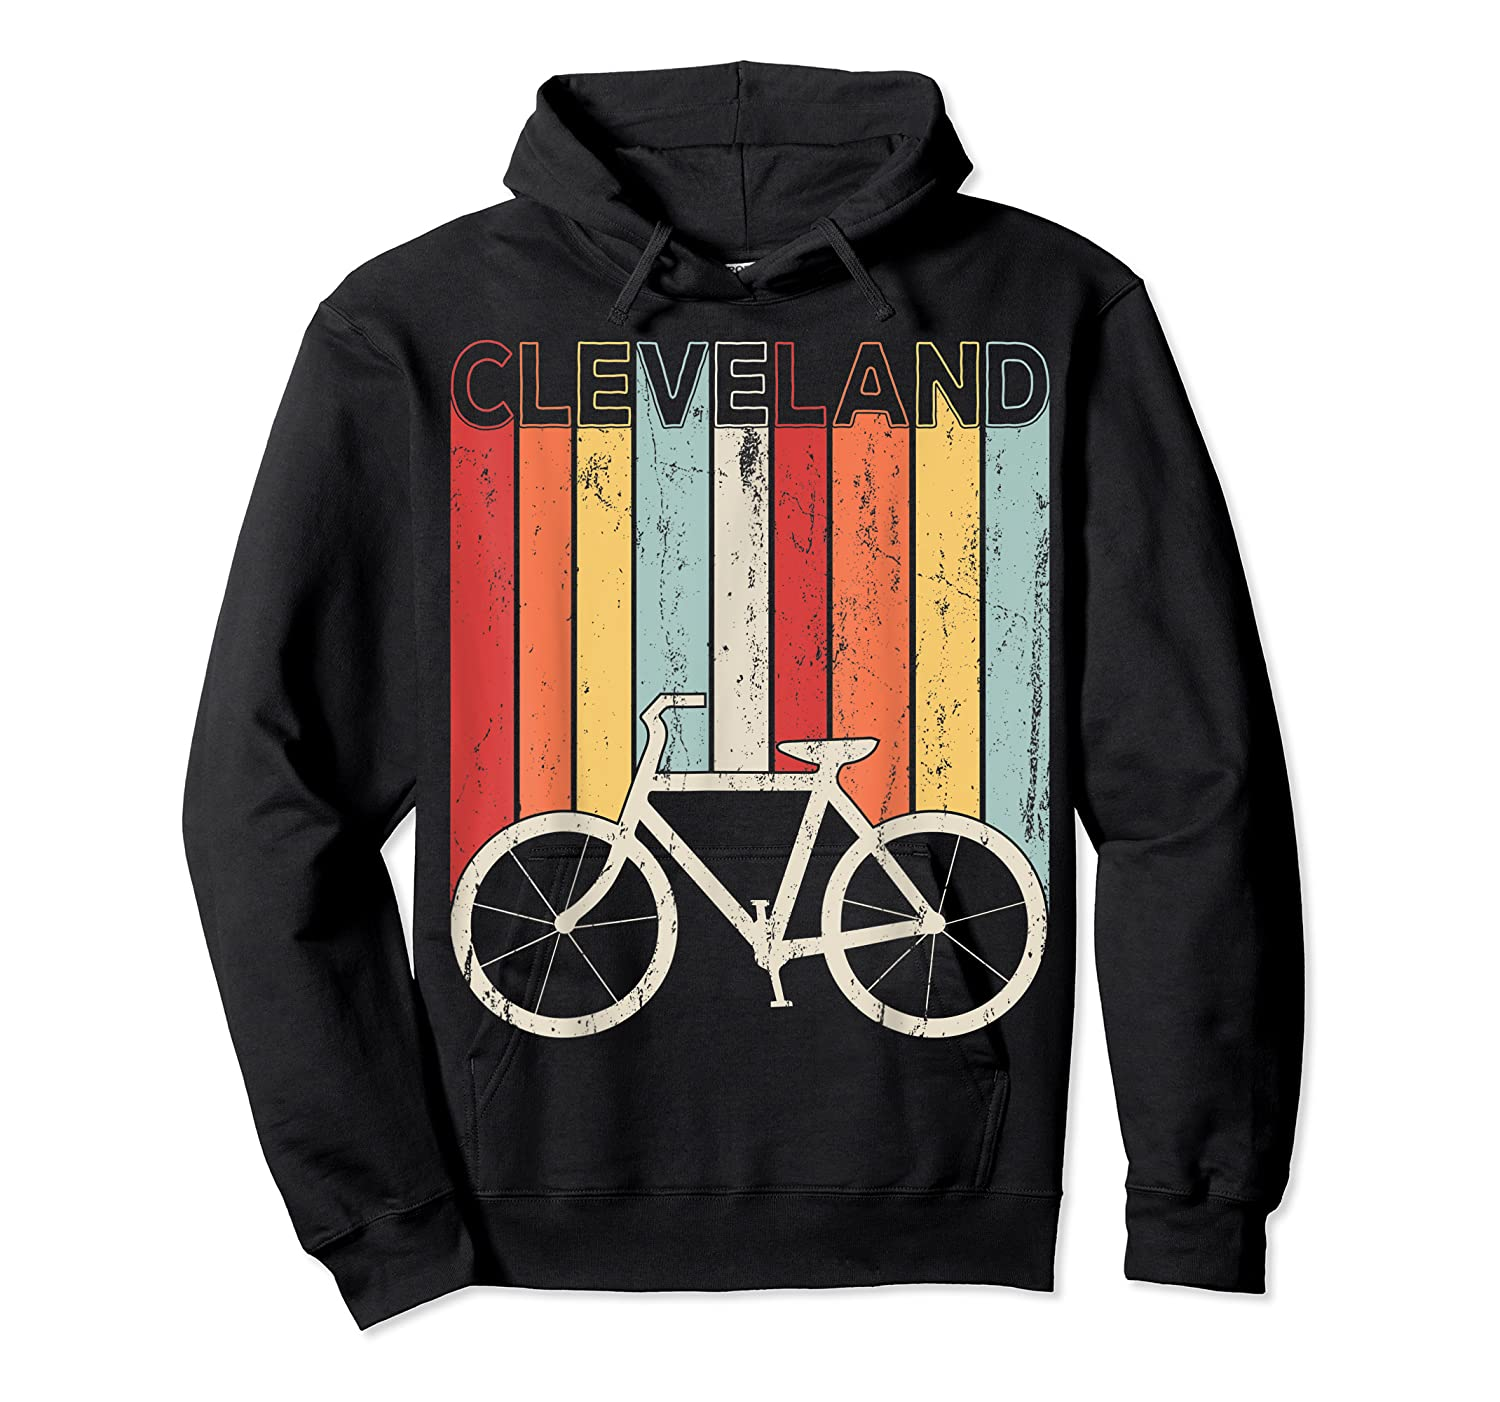 Retro Vintage Cleveland City Cycling Shirt For Cycling Lover Unisex Pullover Hoodie